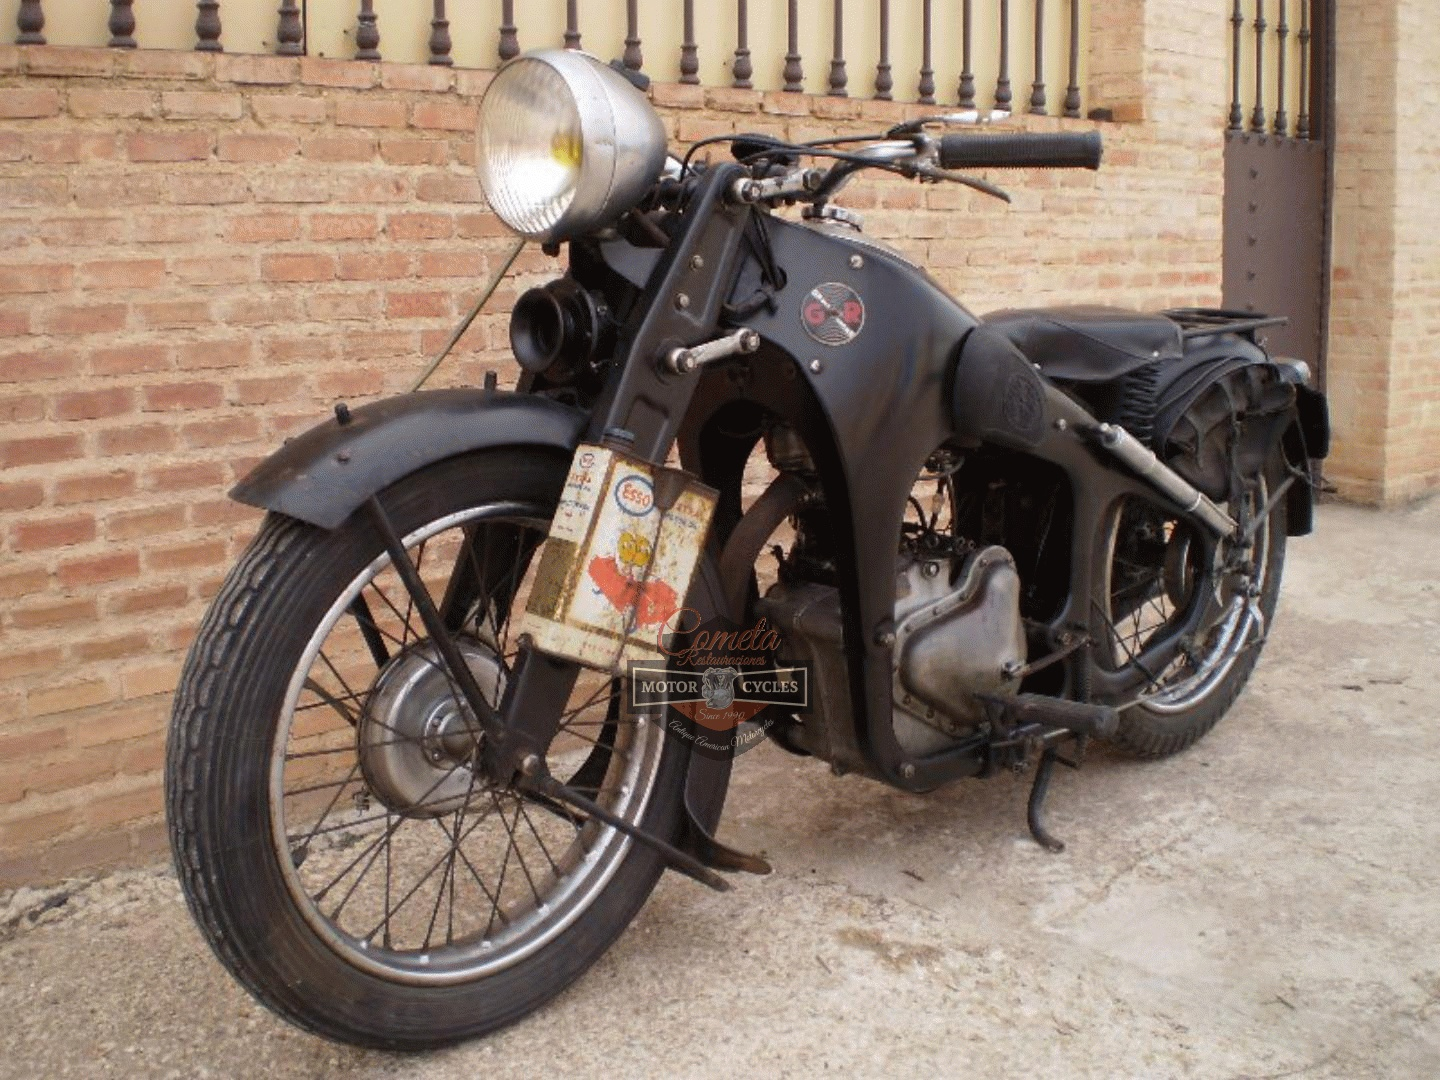 GNOME RHONE SUPER MAJOR SPORT 350 OHV AÑO 1935 ORIGINAL CONDICION